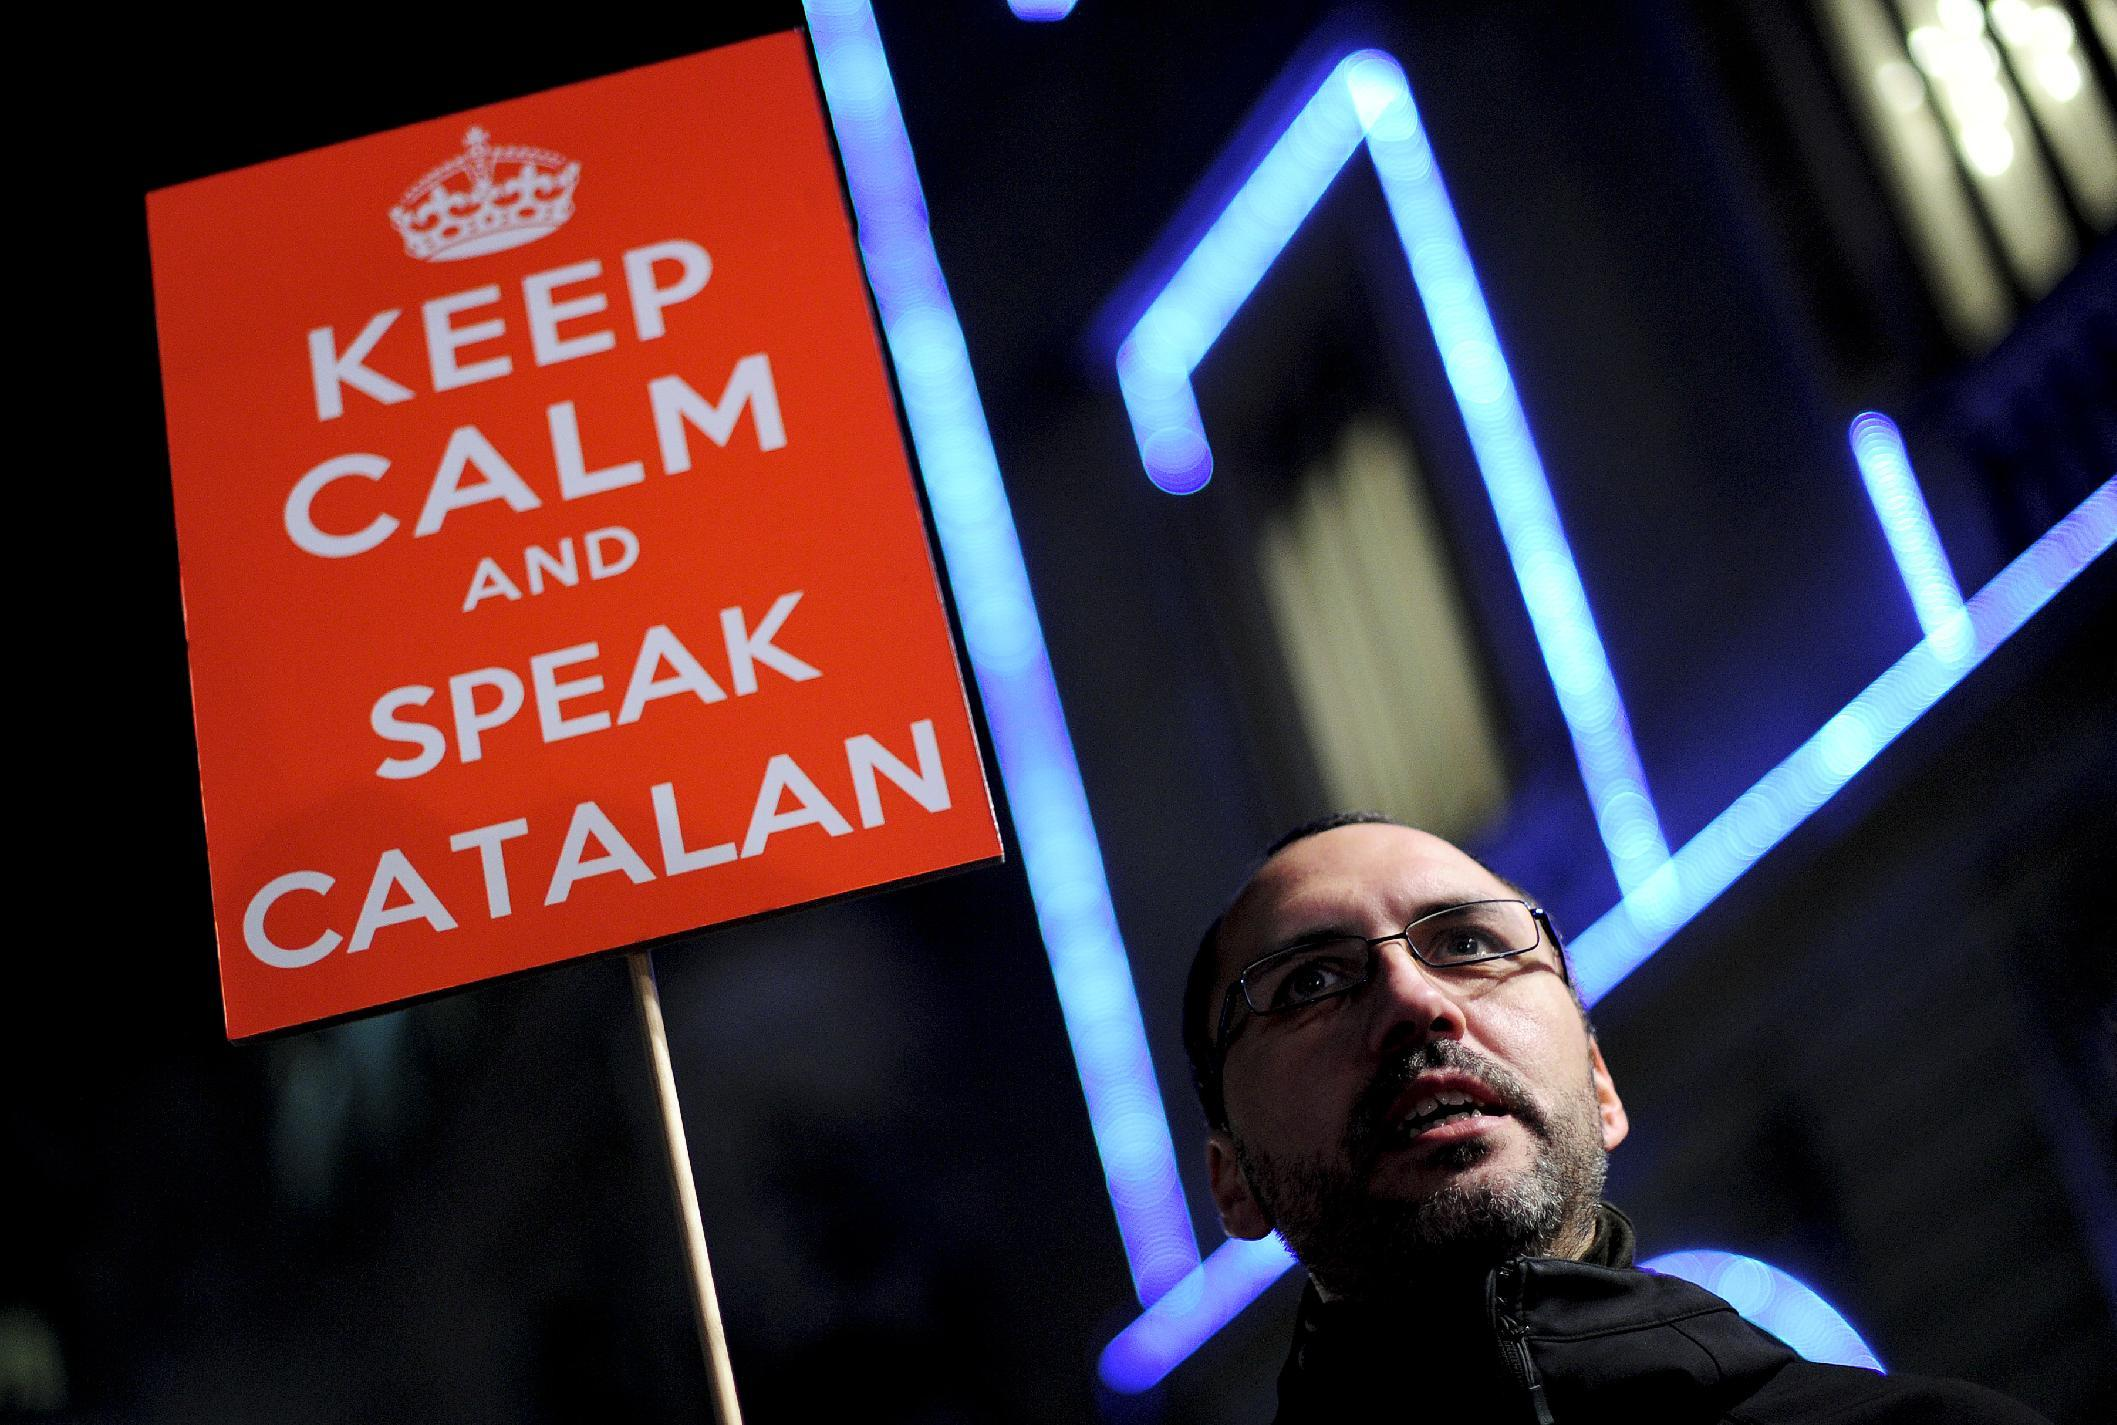 A man holds a banner during a protest in defence of Catalan language and against Education Minister Jose Ignacio Wert in Barcelona on December 10, 2012 (AFP Photo/Josep Lago)